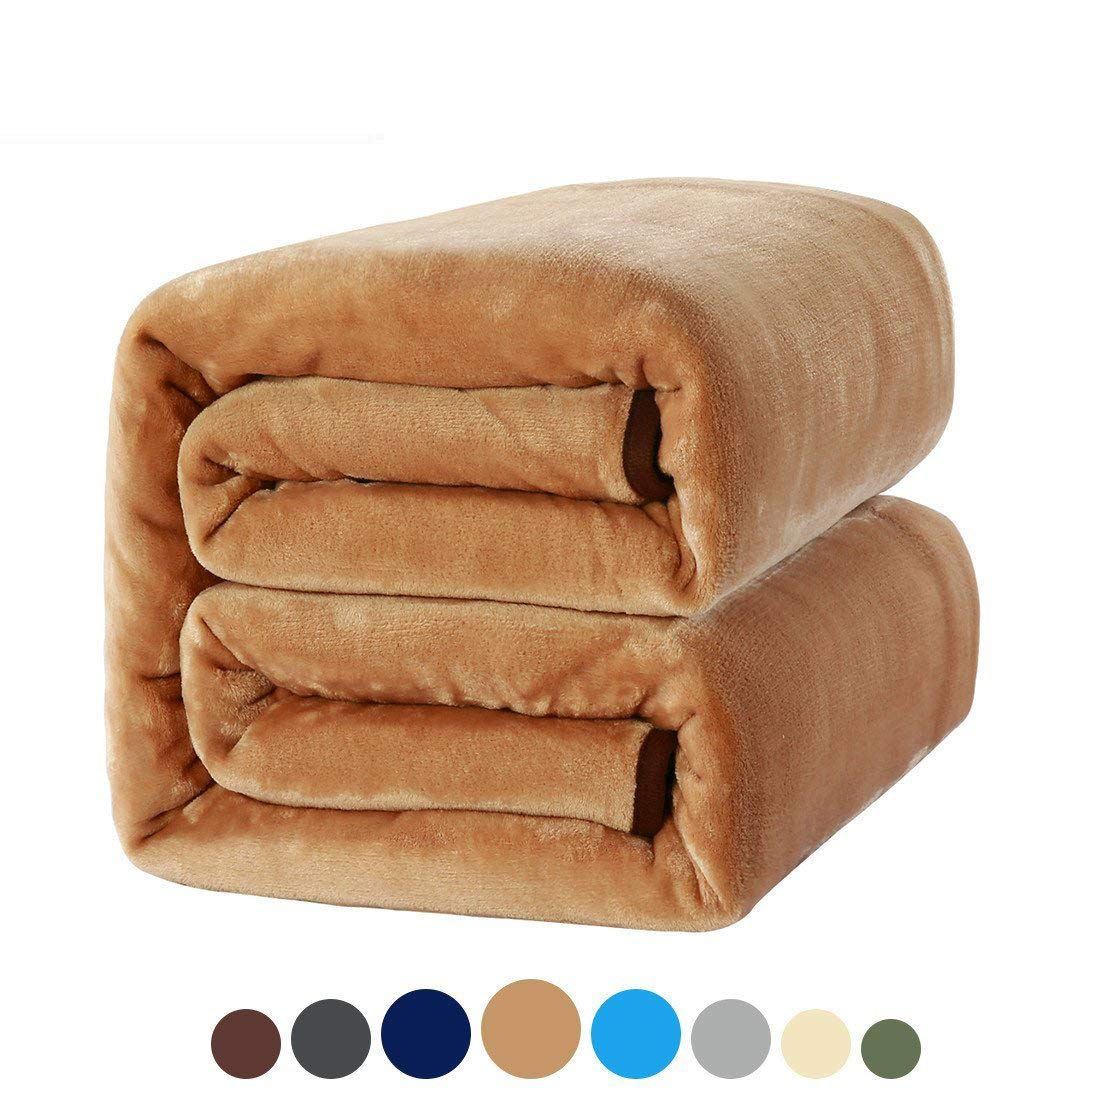 MEROUS Soft Twin Size Fleece Bed Blanket 330 GSM Warm Cozy Microfiber Fuzzy Lightweight All Season Blanket for Couch Travel Sofa,Tan.